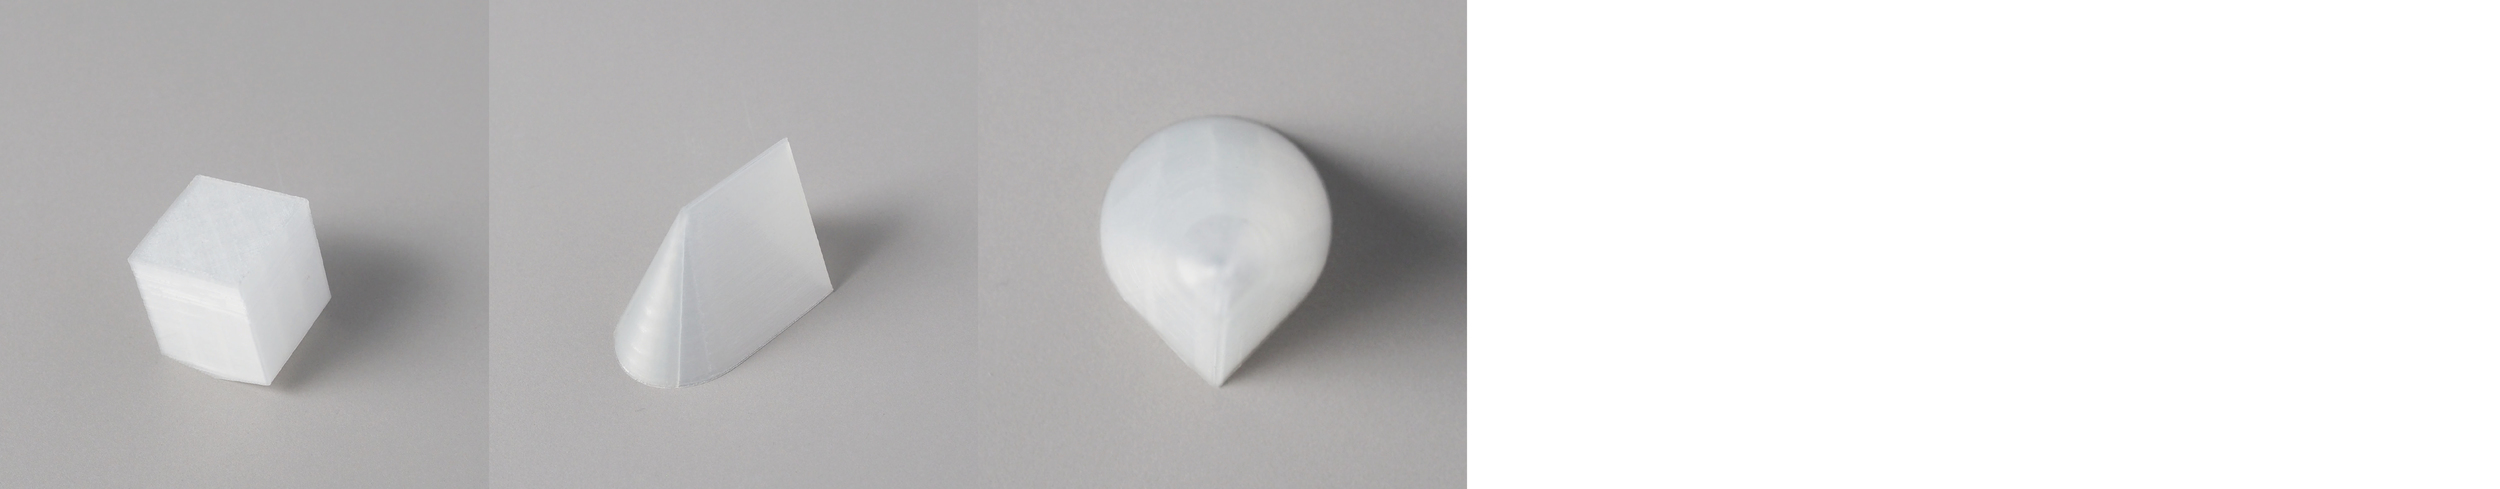 """Form study: Combined  Series   Size: 4"""" x 4""""   Material: PLA"""